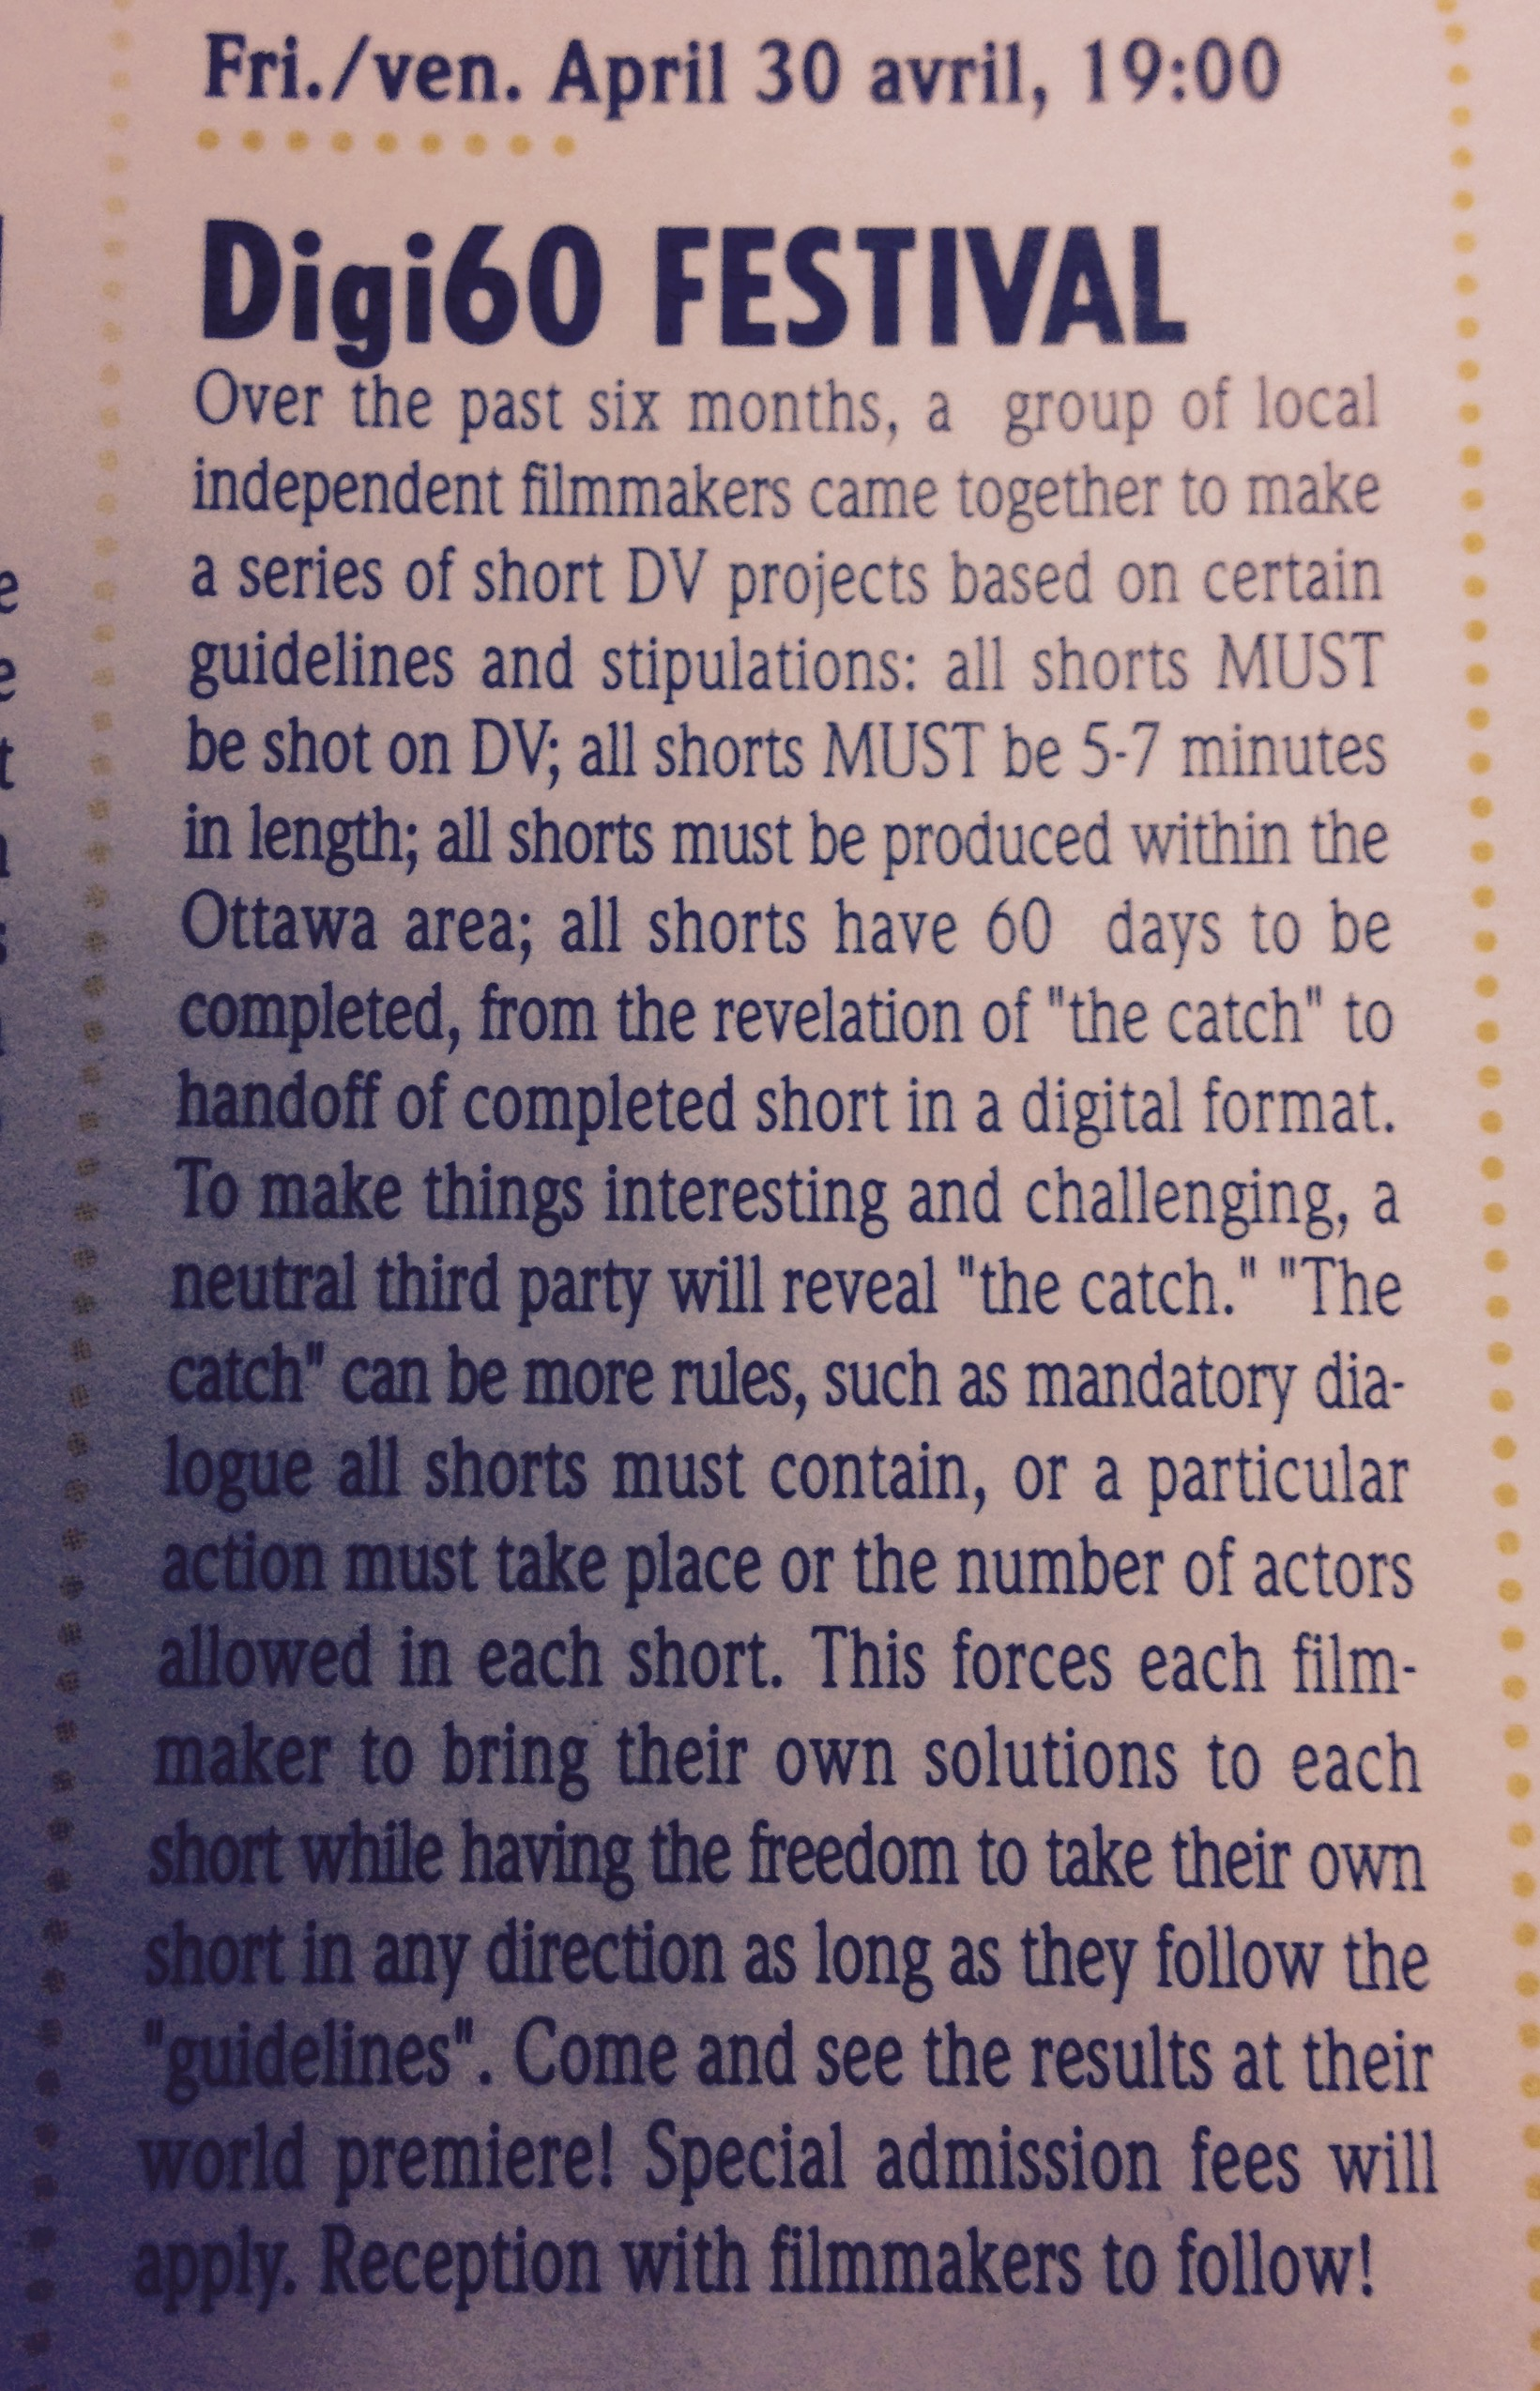 """""""All shorts must be shot on DV.""""  April 2004 Canadian Film Institute News Letter announcing the first Digi60 Filmmakers Festival in Ottawa, ON.  Copyright the Canadian Film Institute Archives."""